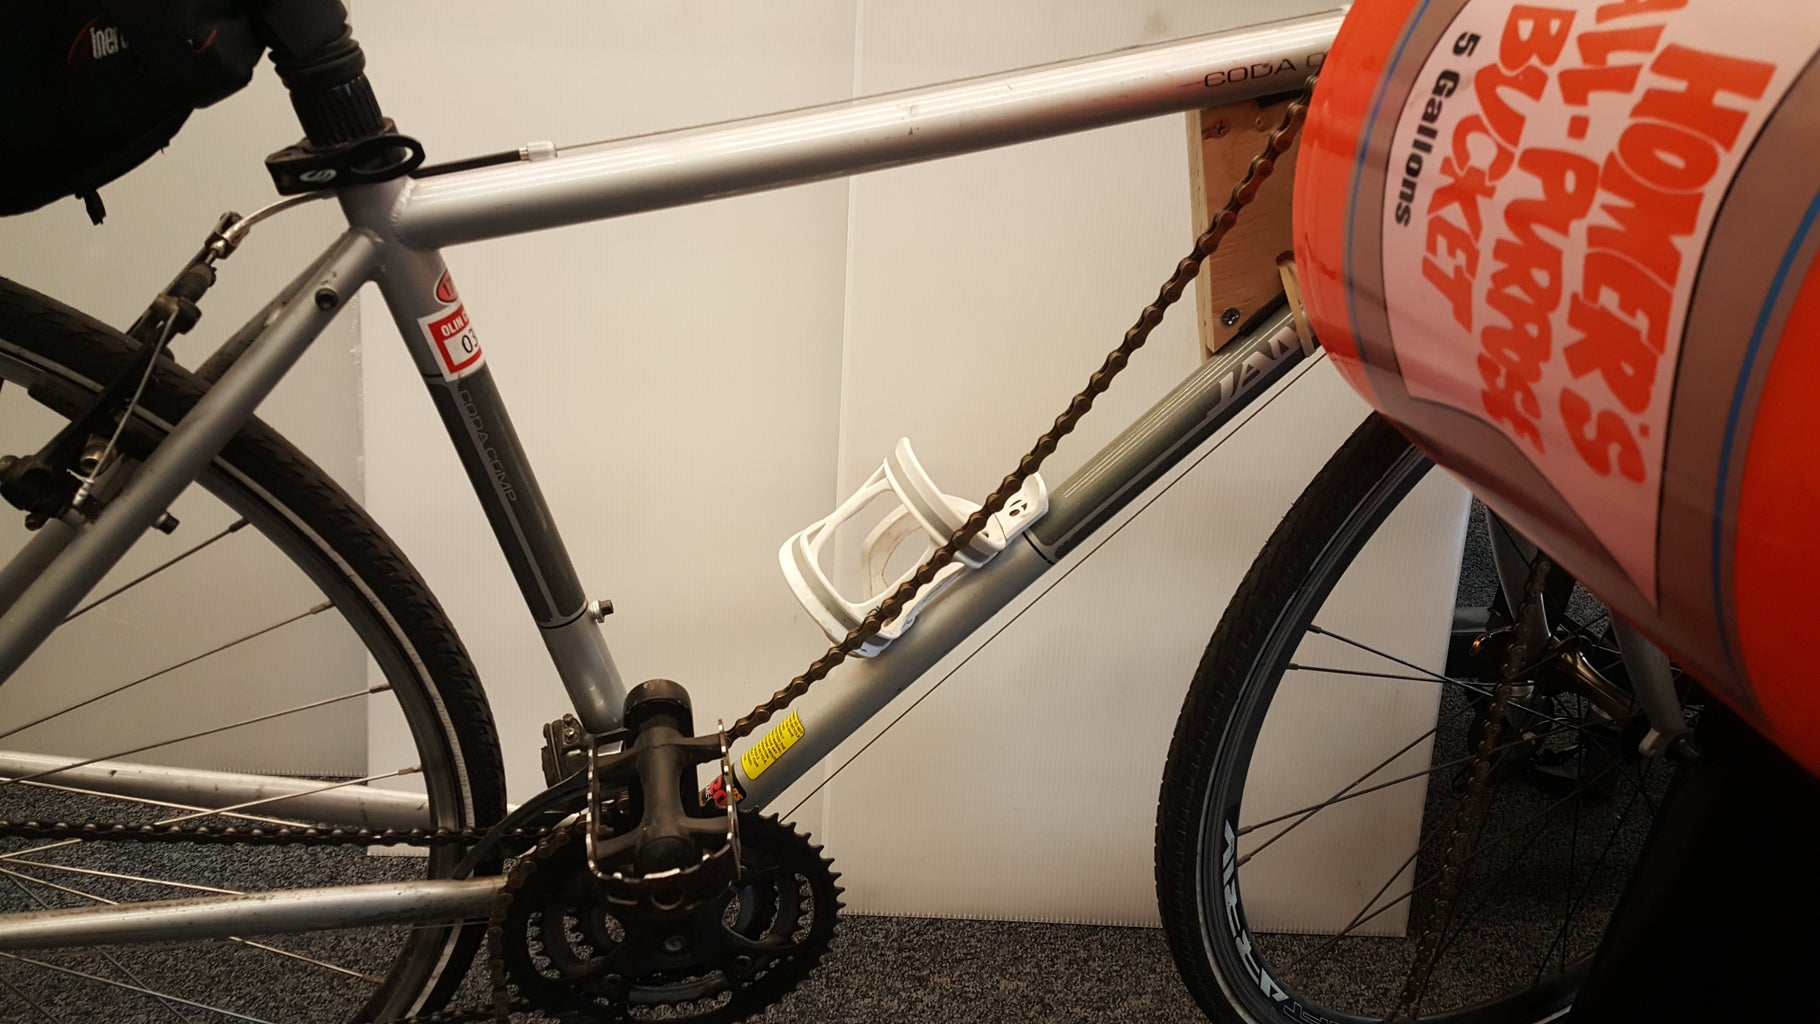 Reassemble: Size Chain and Locate Shaft Holes